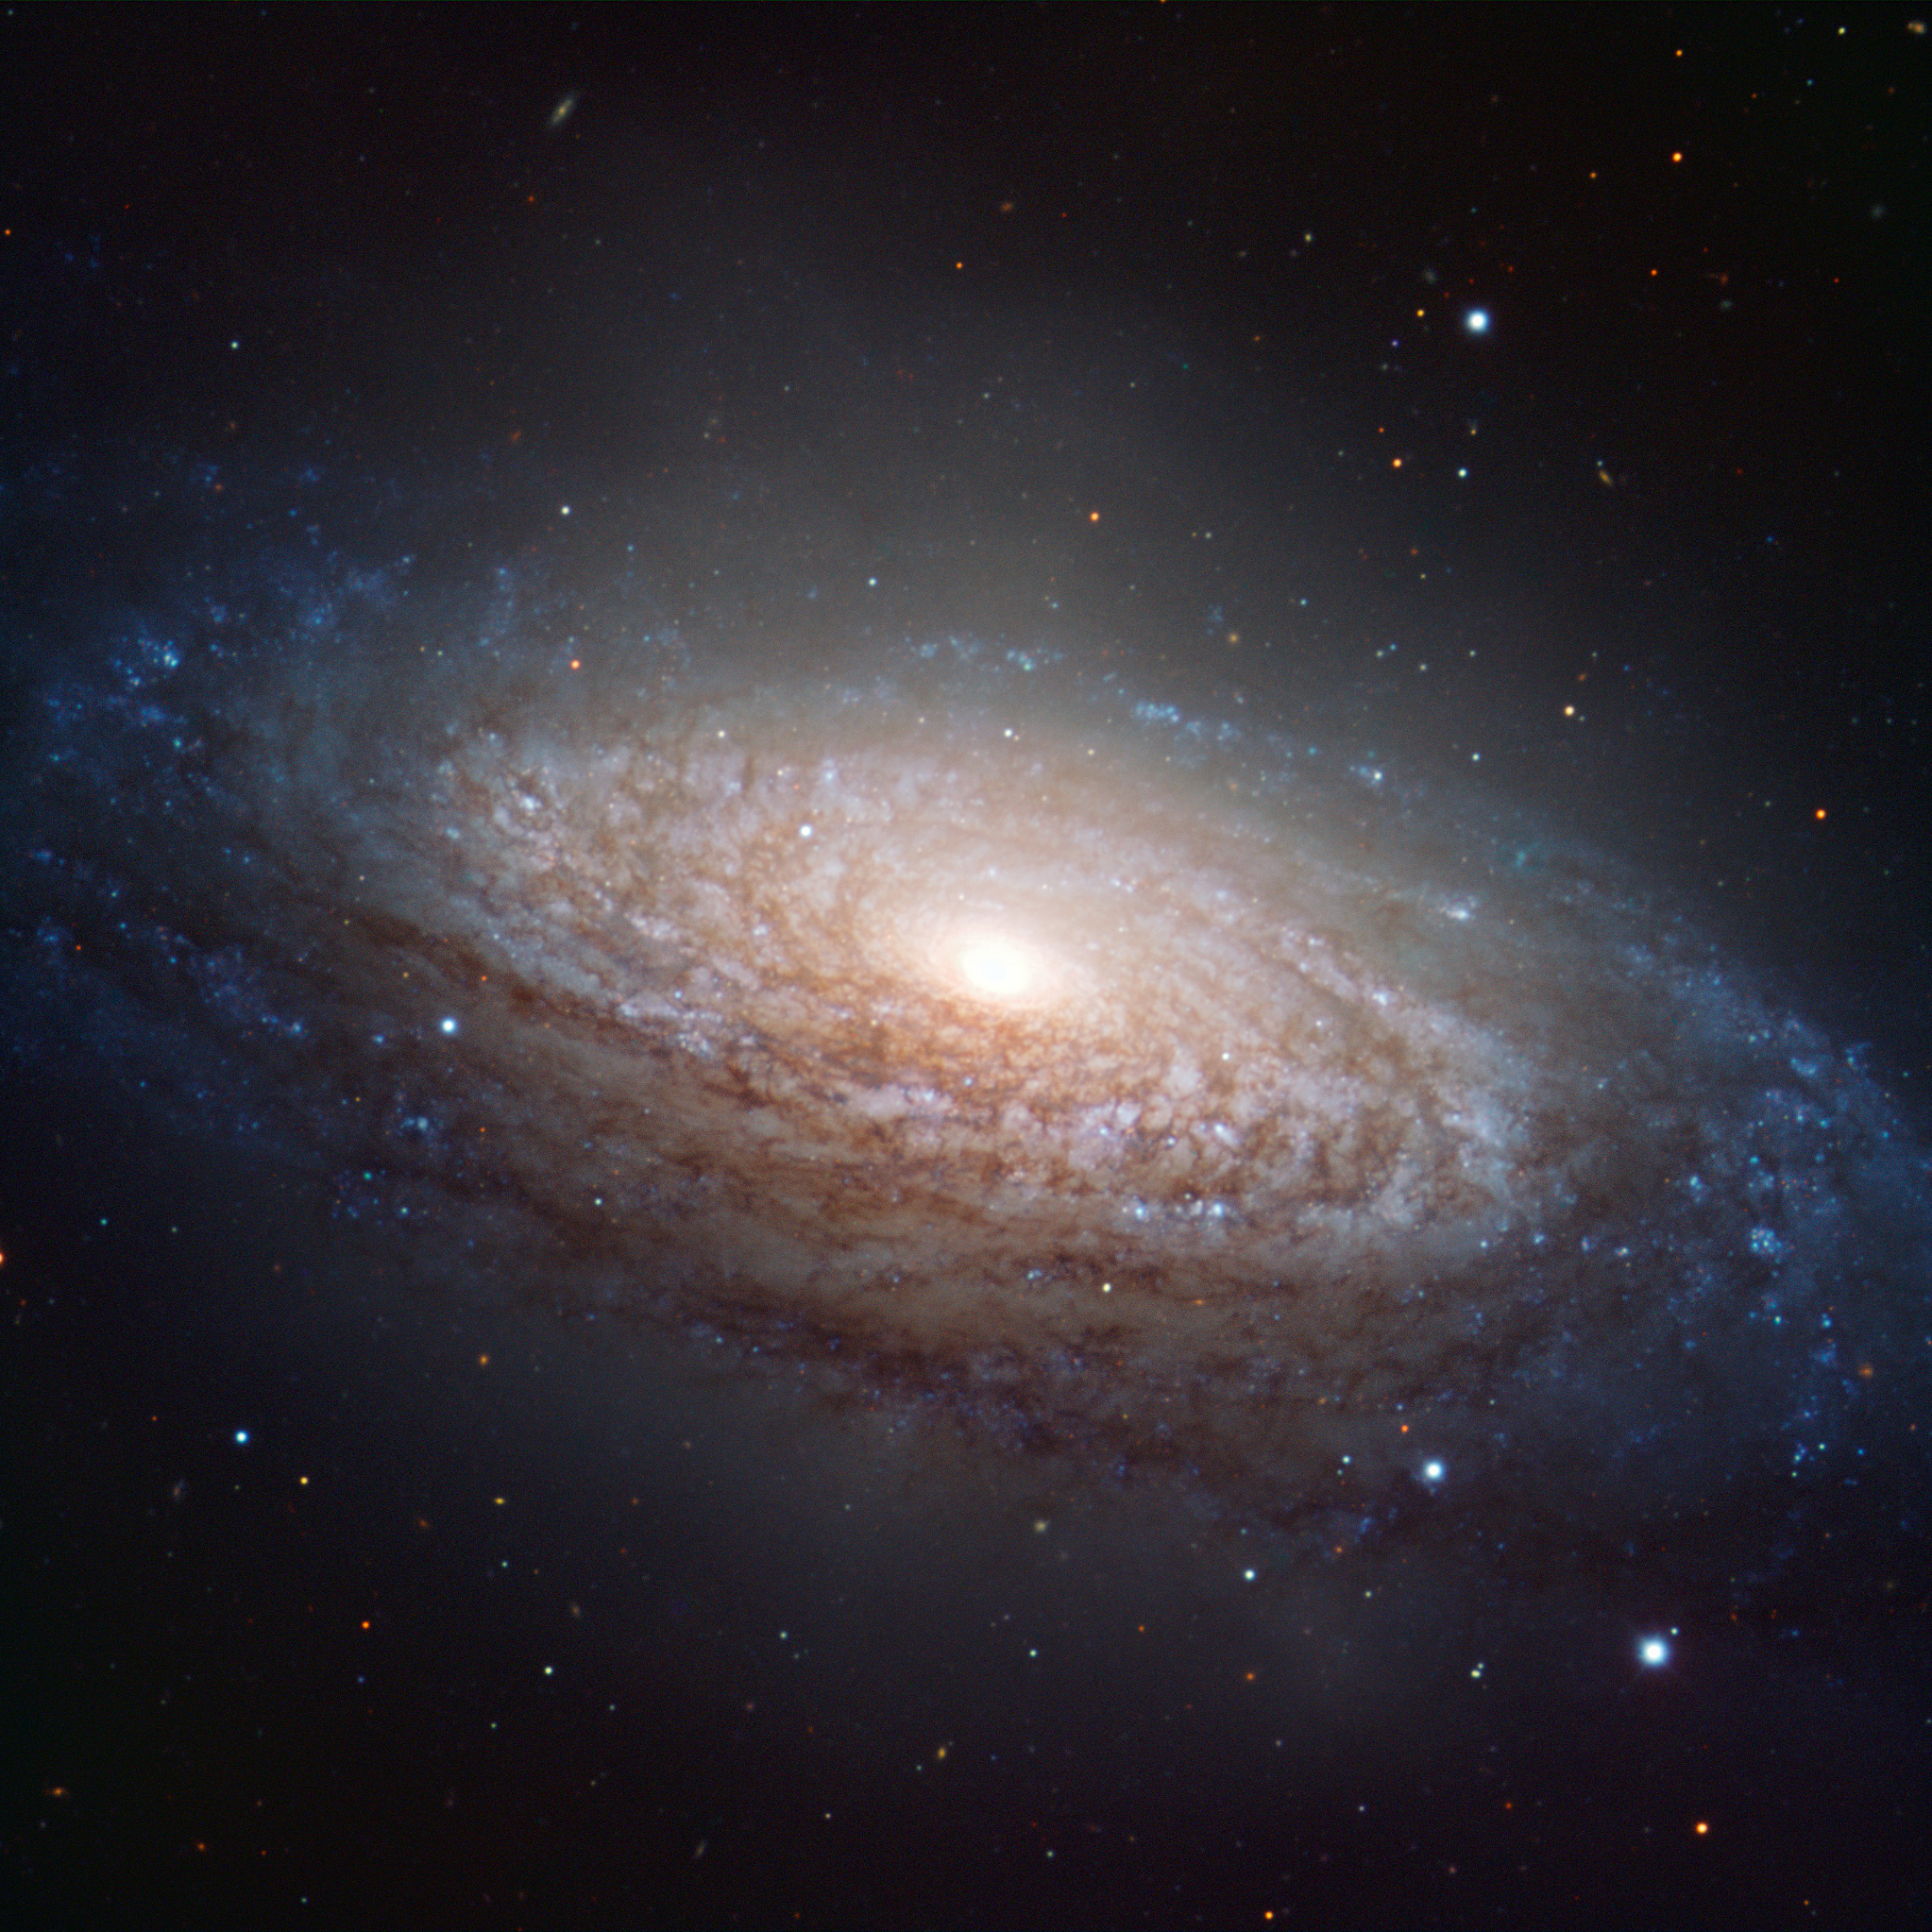 Spiral Galaxy NGC 3521 in the Constellation of Leo